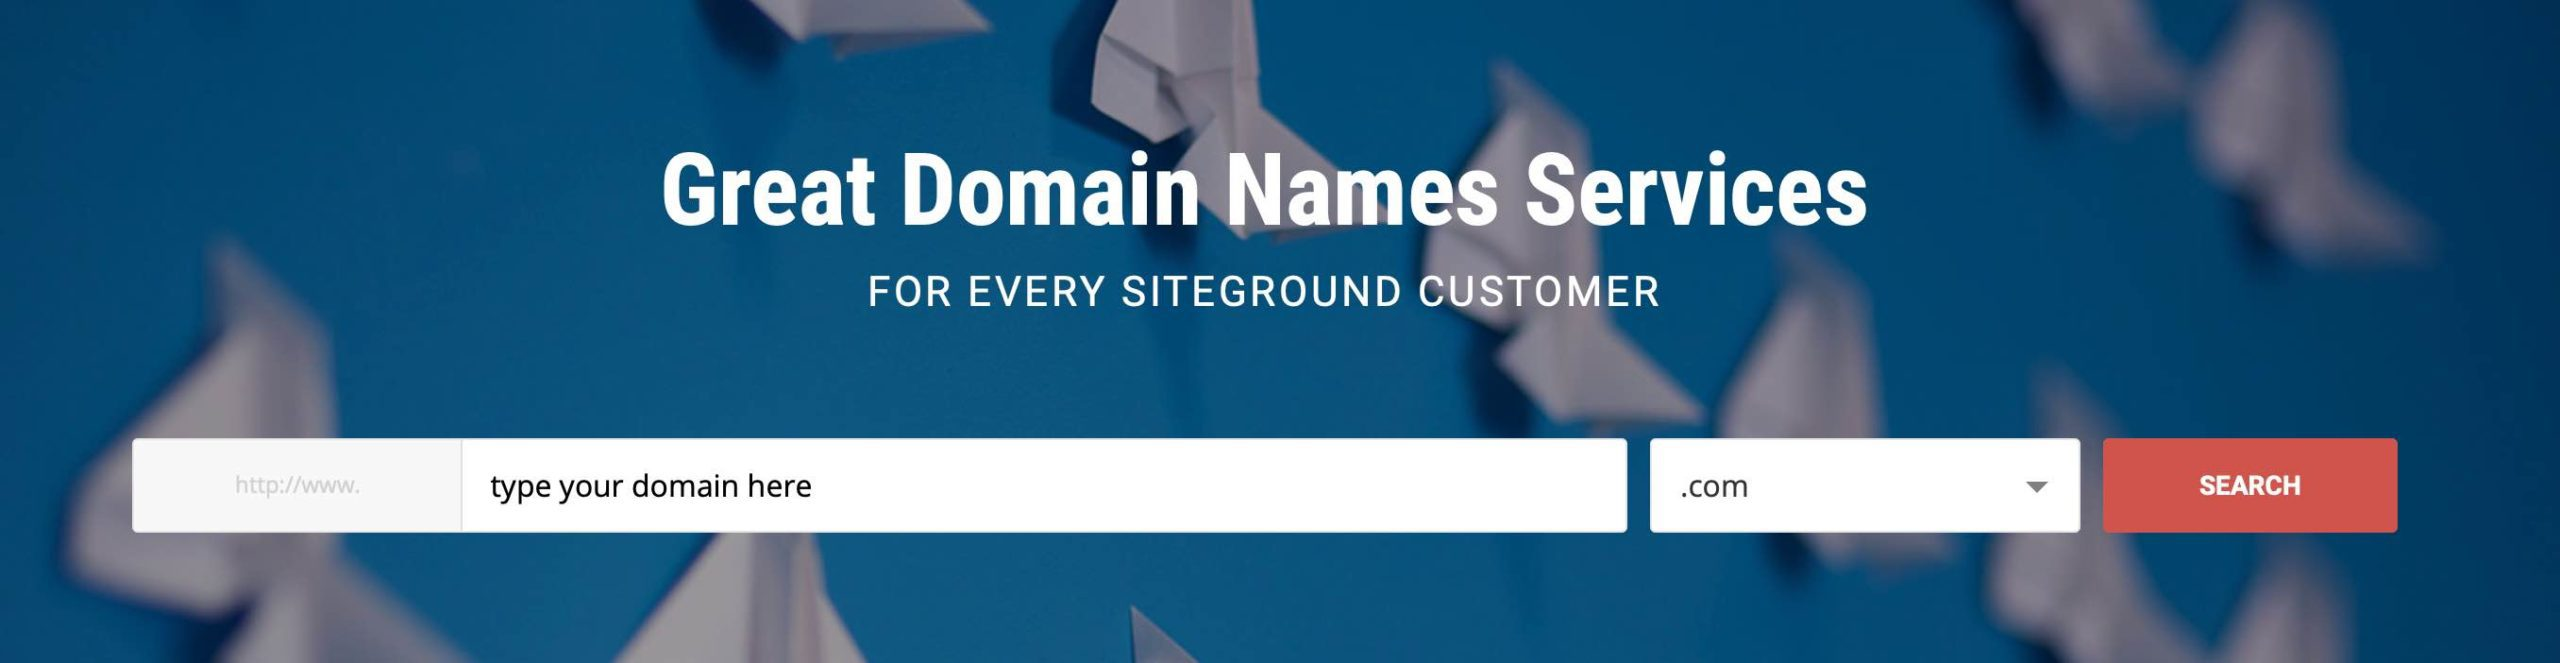 Great Domain Names Services